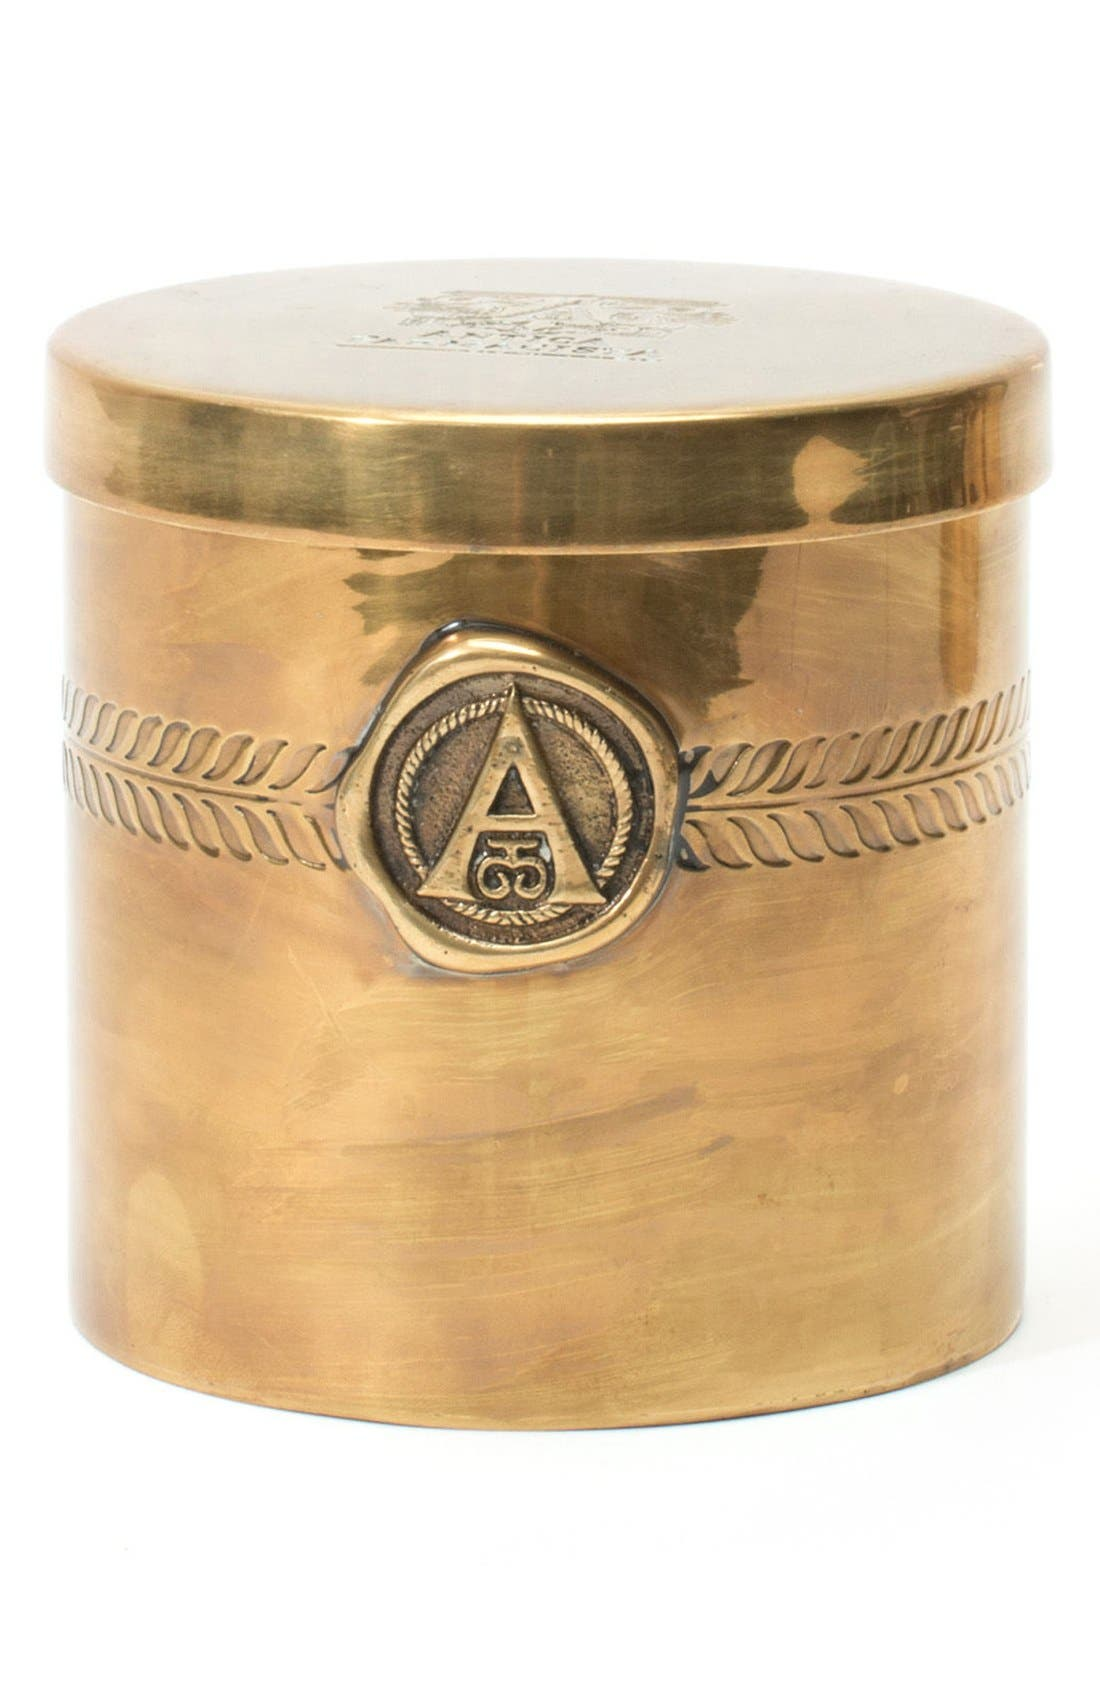 ANTICA FARMACISTA,                             Champagne Black Label Three-Wick Brass Candle,                             Alternate thumbnail 2, color,                             000